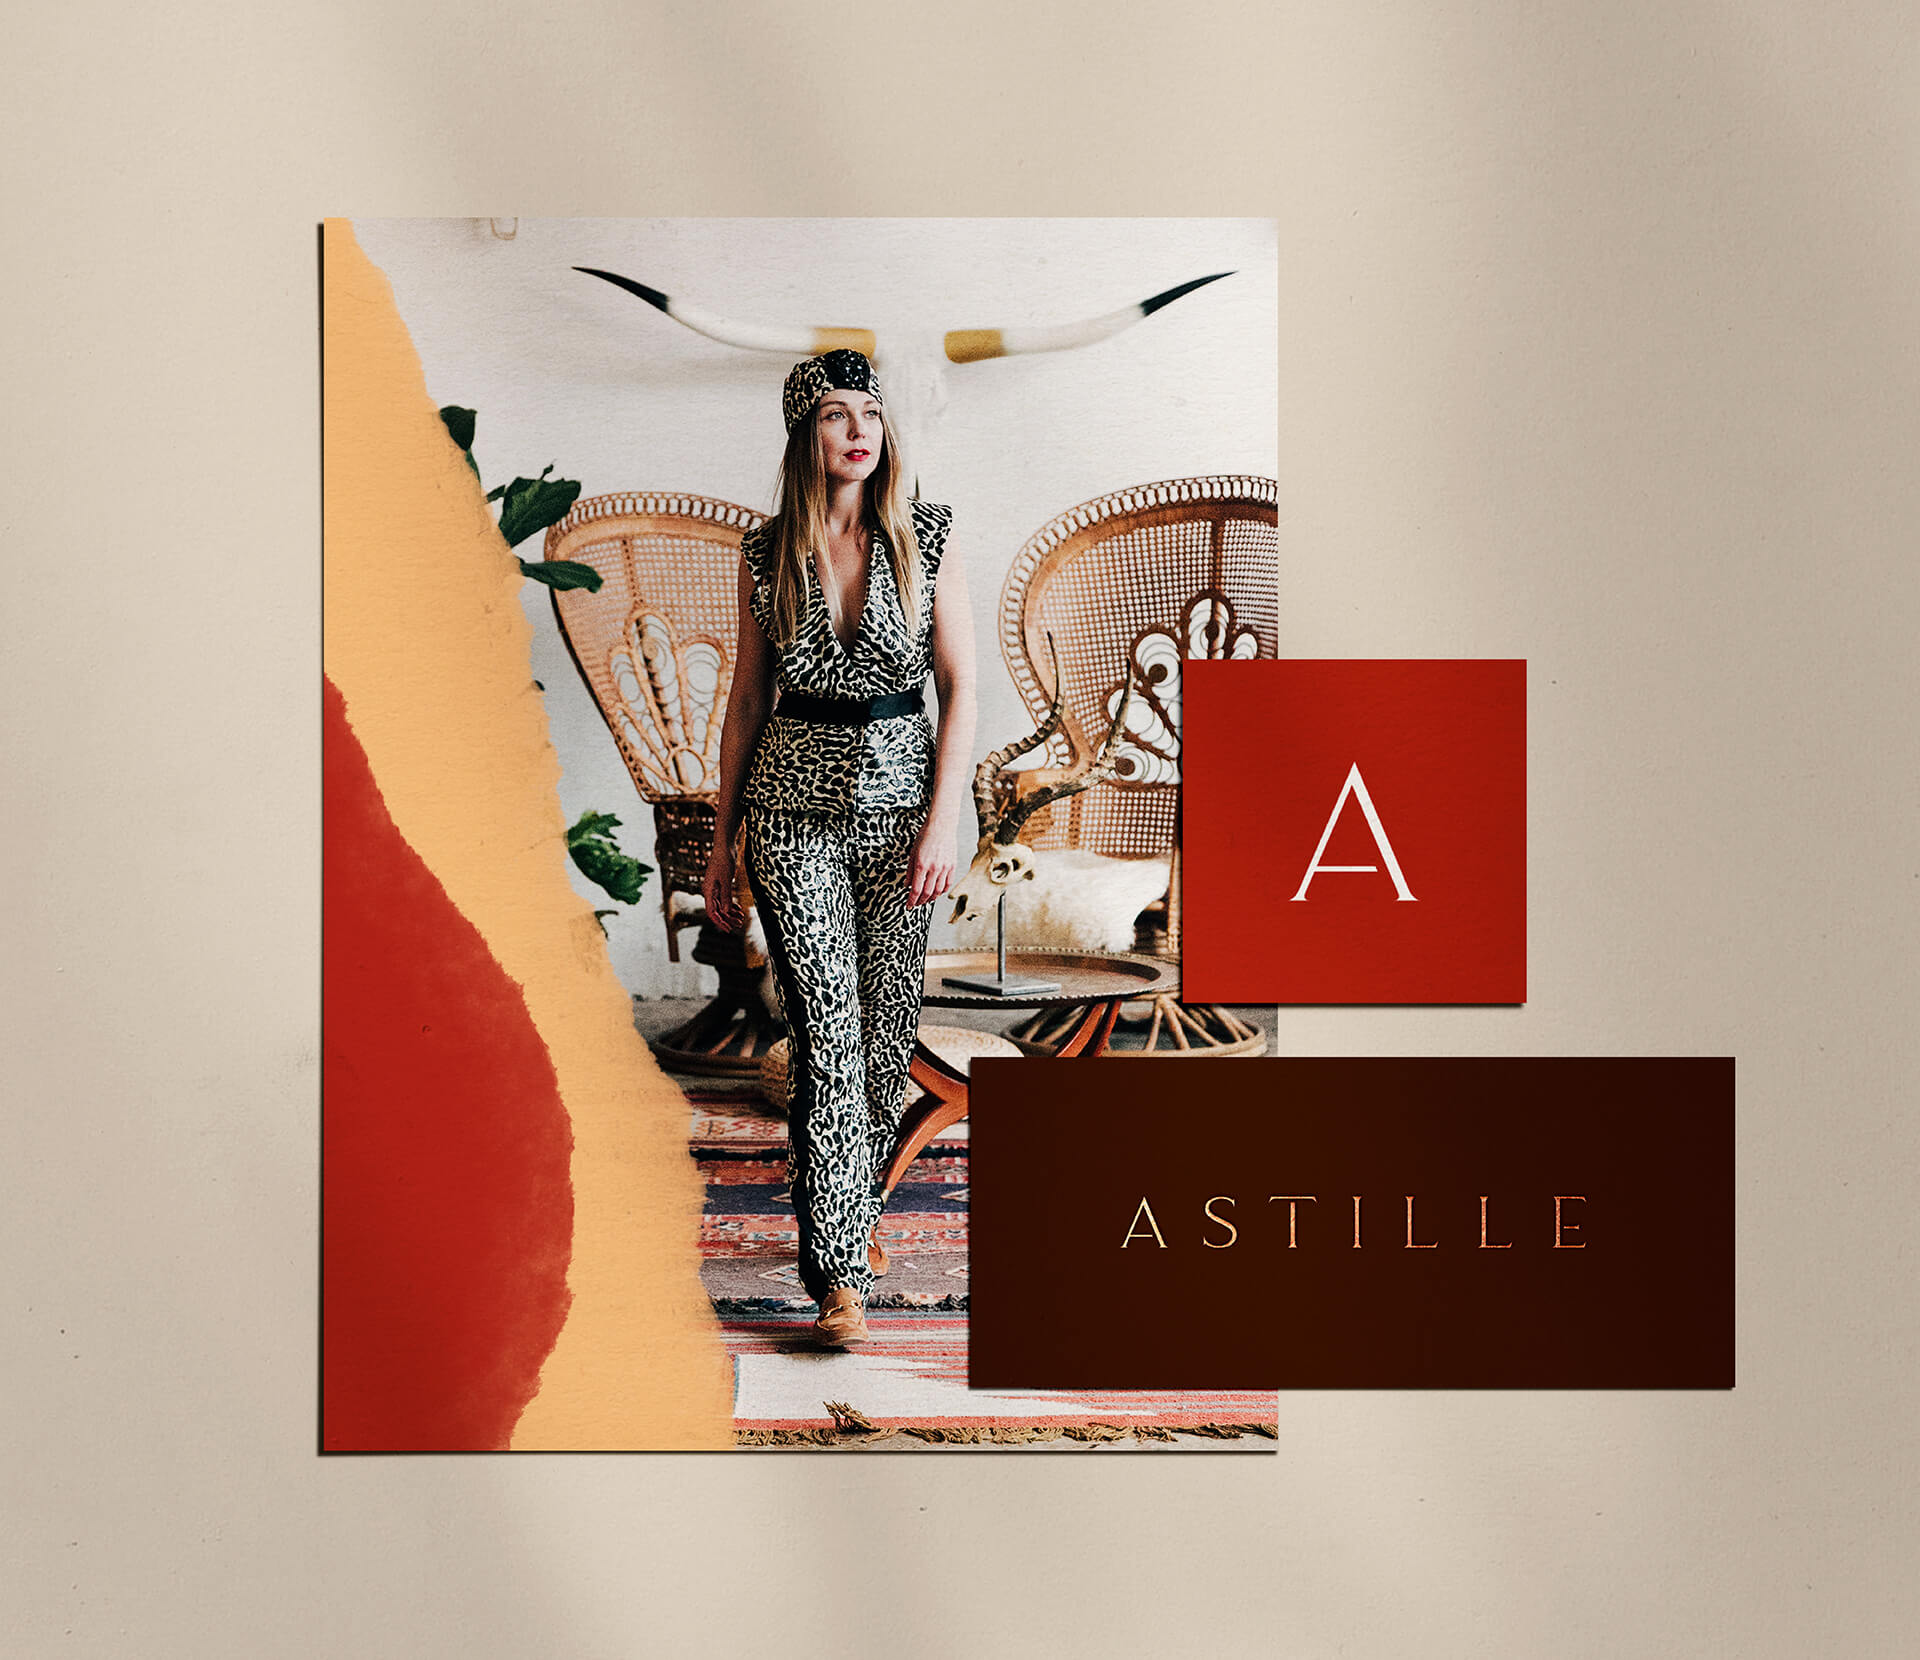 Overview of Astille brand identity logo suite